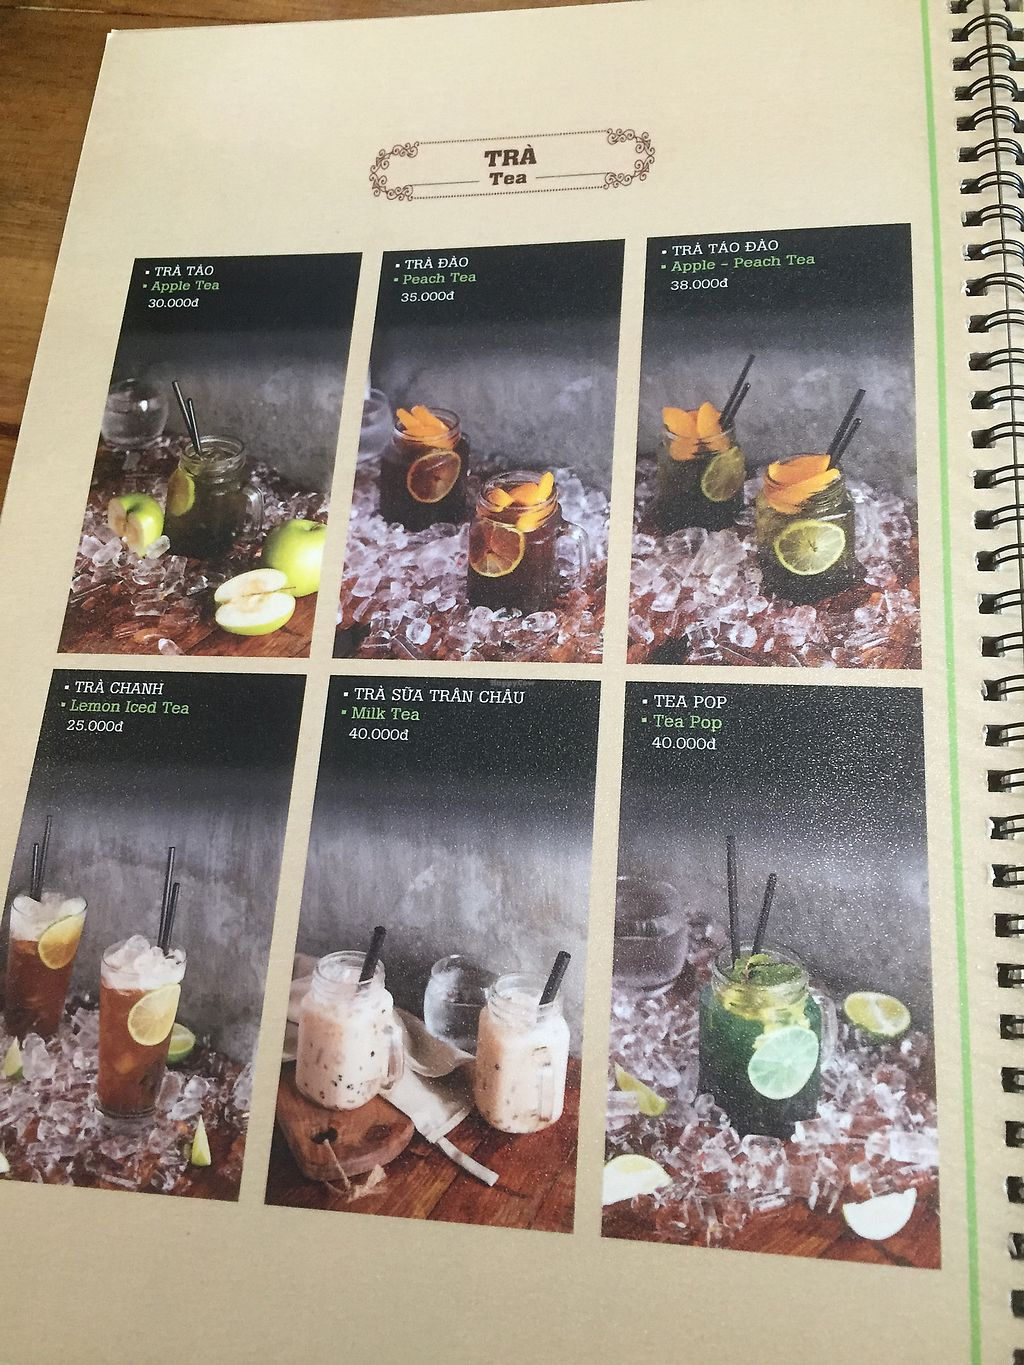 """Photo of Vegan Kitchen  by <a href=""""/members/profile/SusanRoberts"""">SusanRoberts</a> <br/>Menu <br/> December 31, 2017  - <a href='/contact/abuse/image/91953/341232'>Report</a>"""